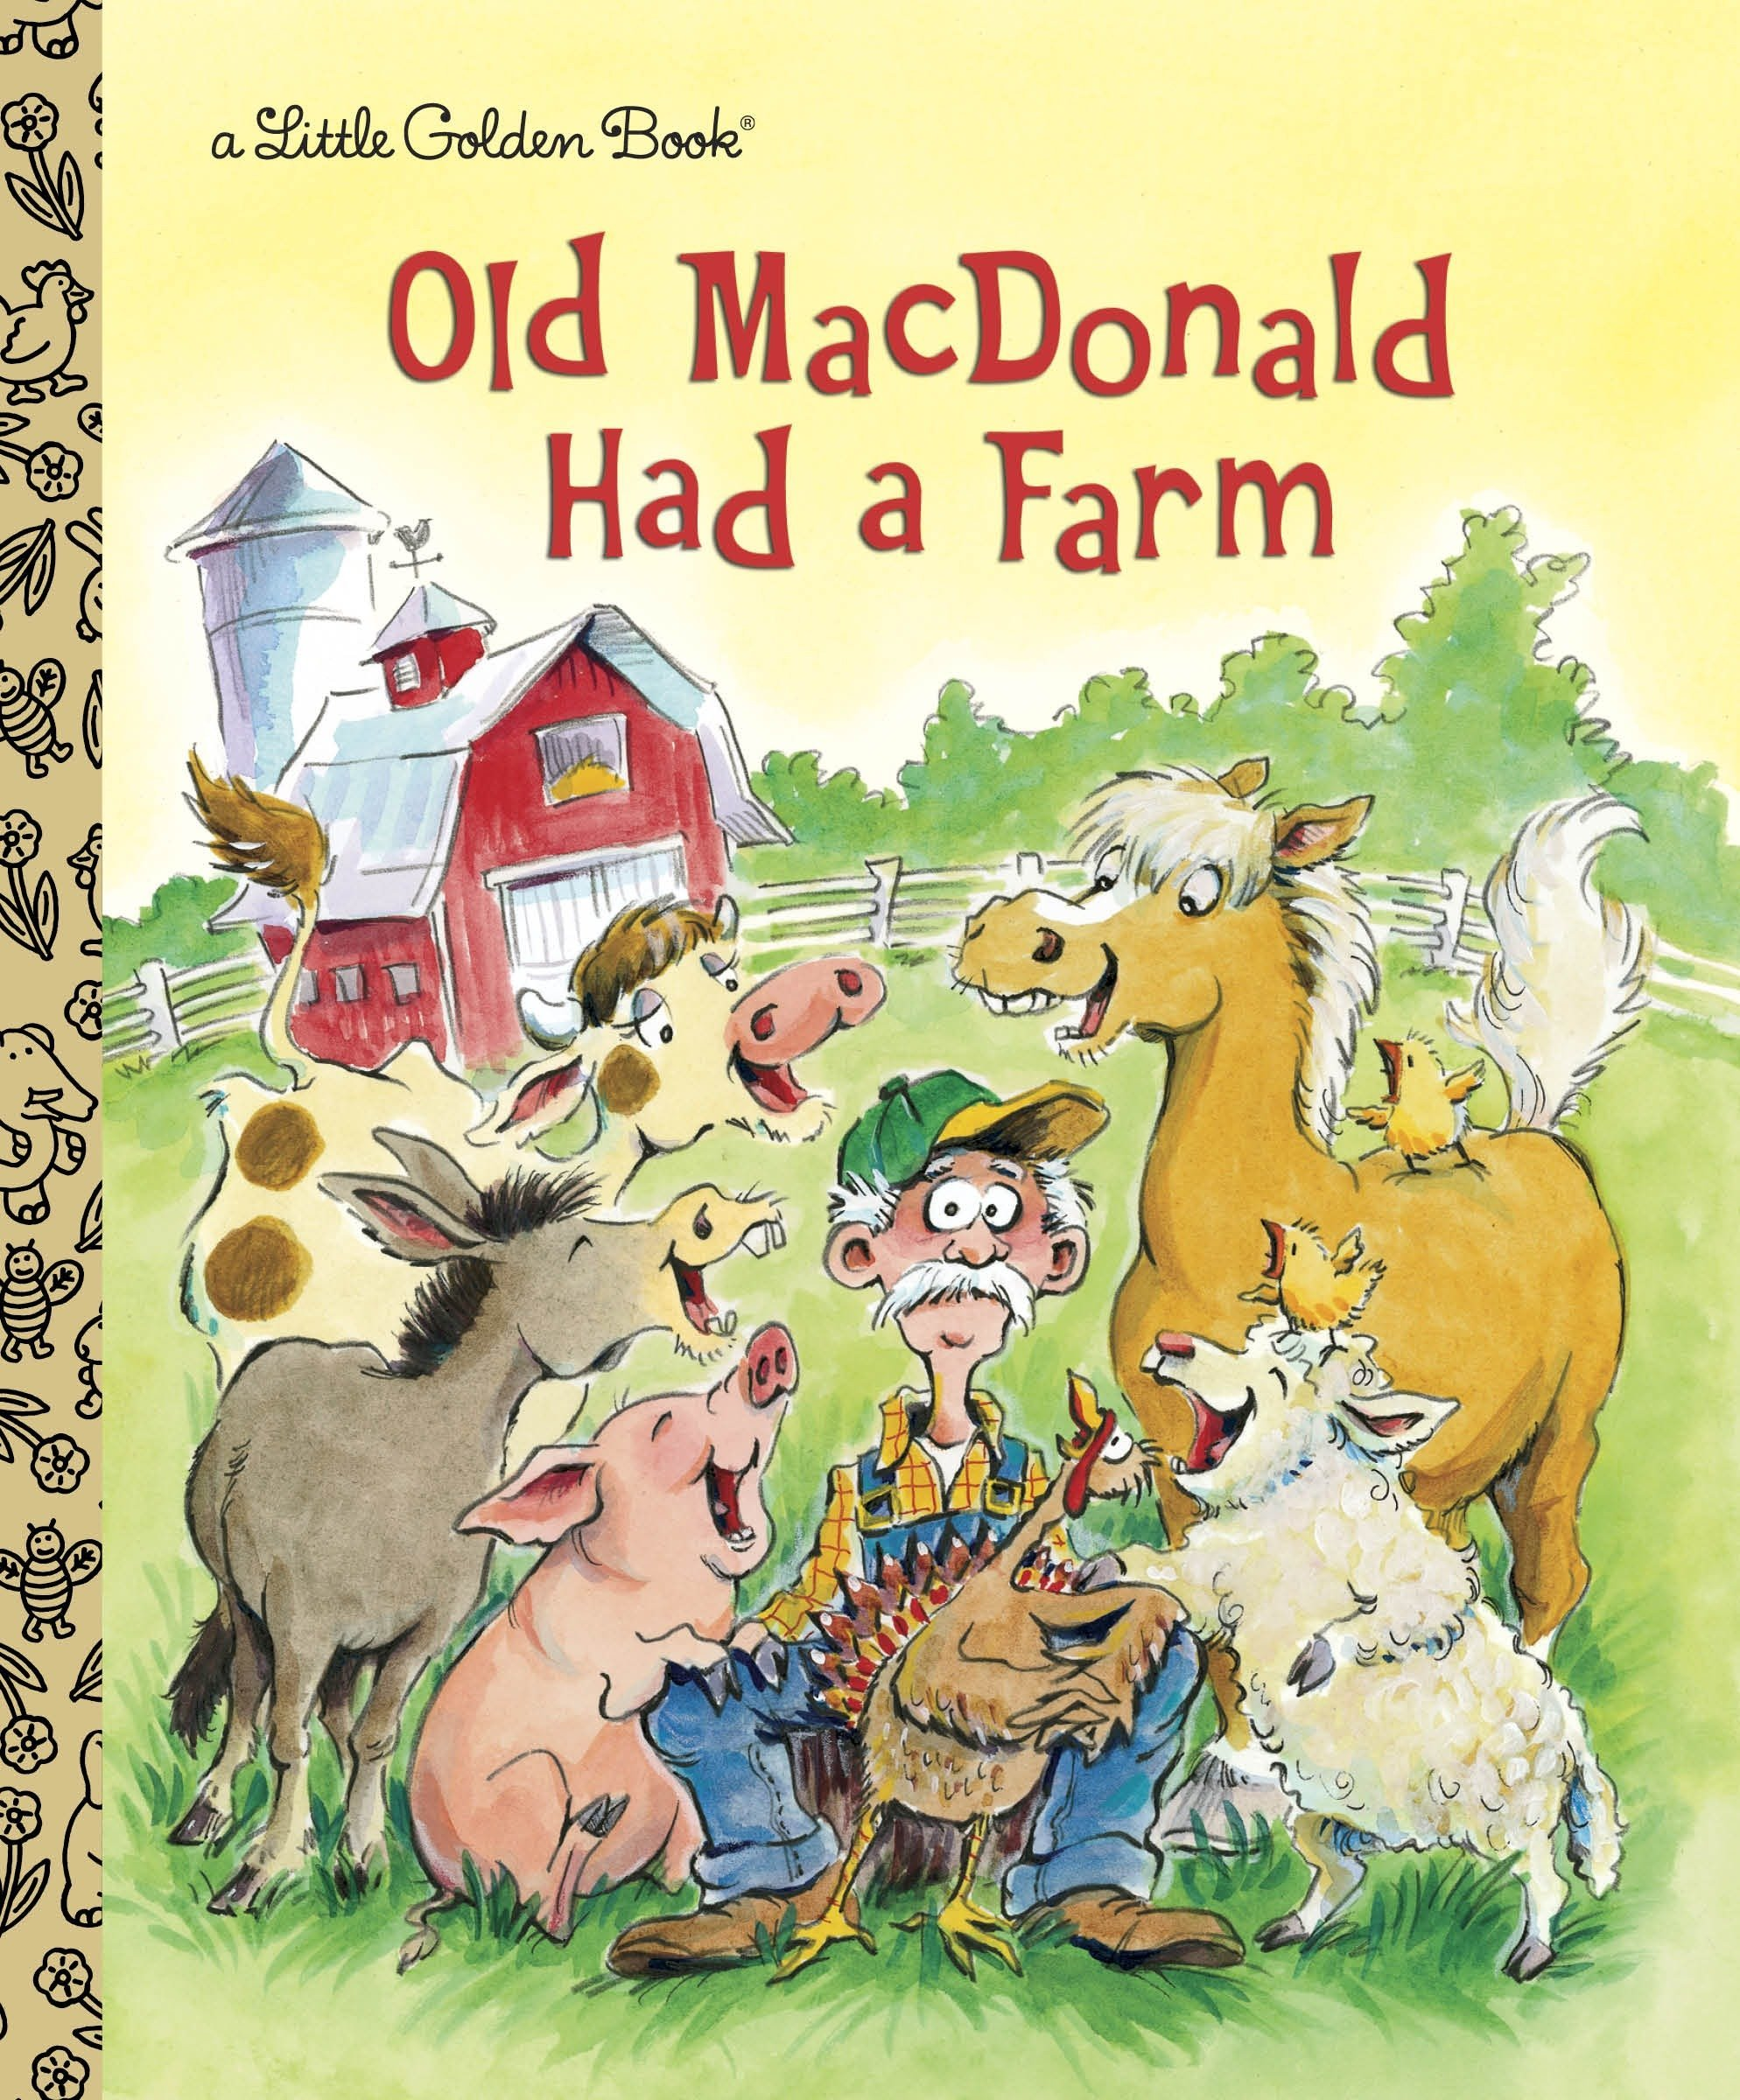 Old Macdonald Had A Farm (Little Golden Books)